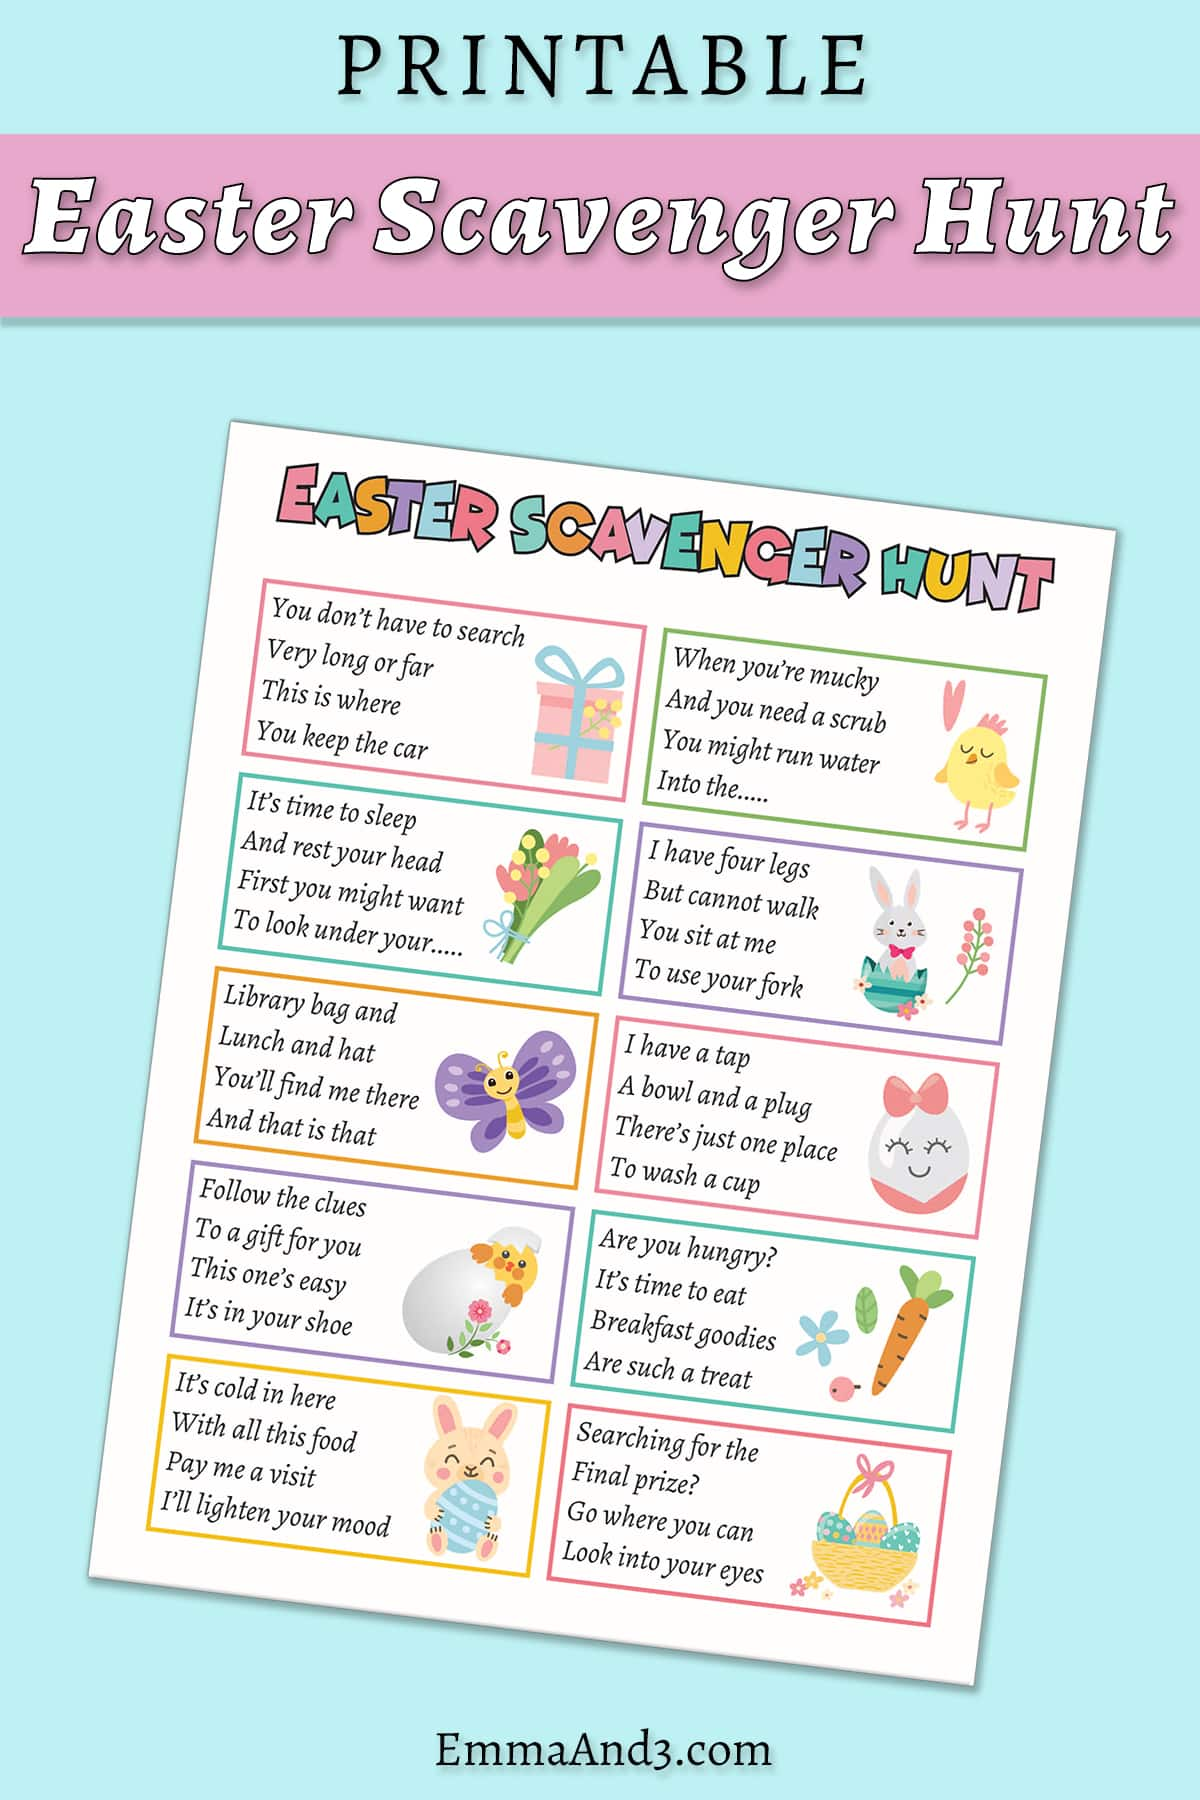 A sheet of scavenger hunt clues decorated with colour images in an Easter theme, such as carrots and bunnies. Caption reads: printable Easter scavenger hunt.